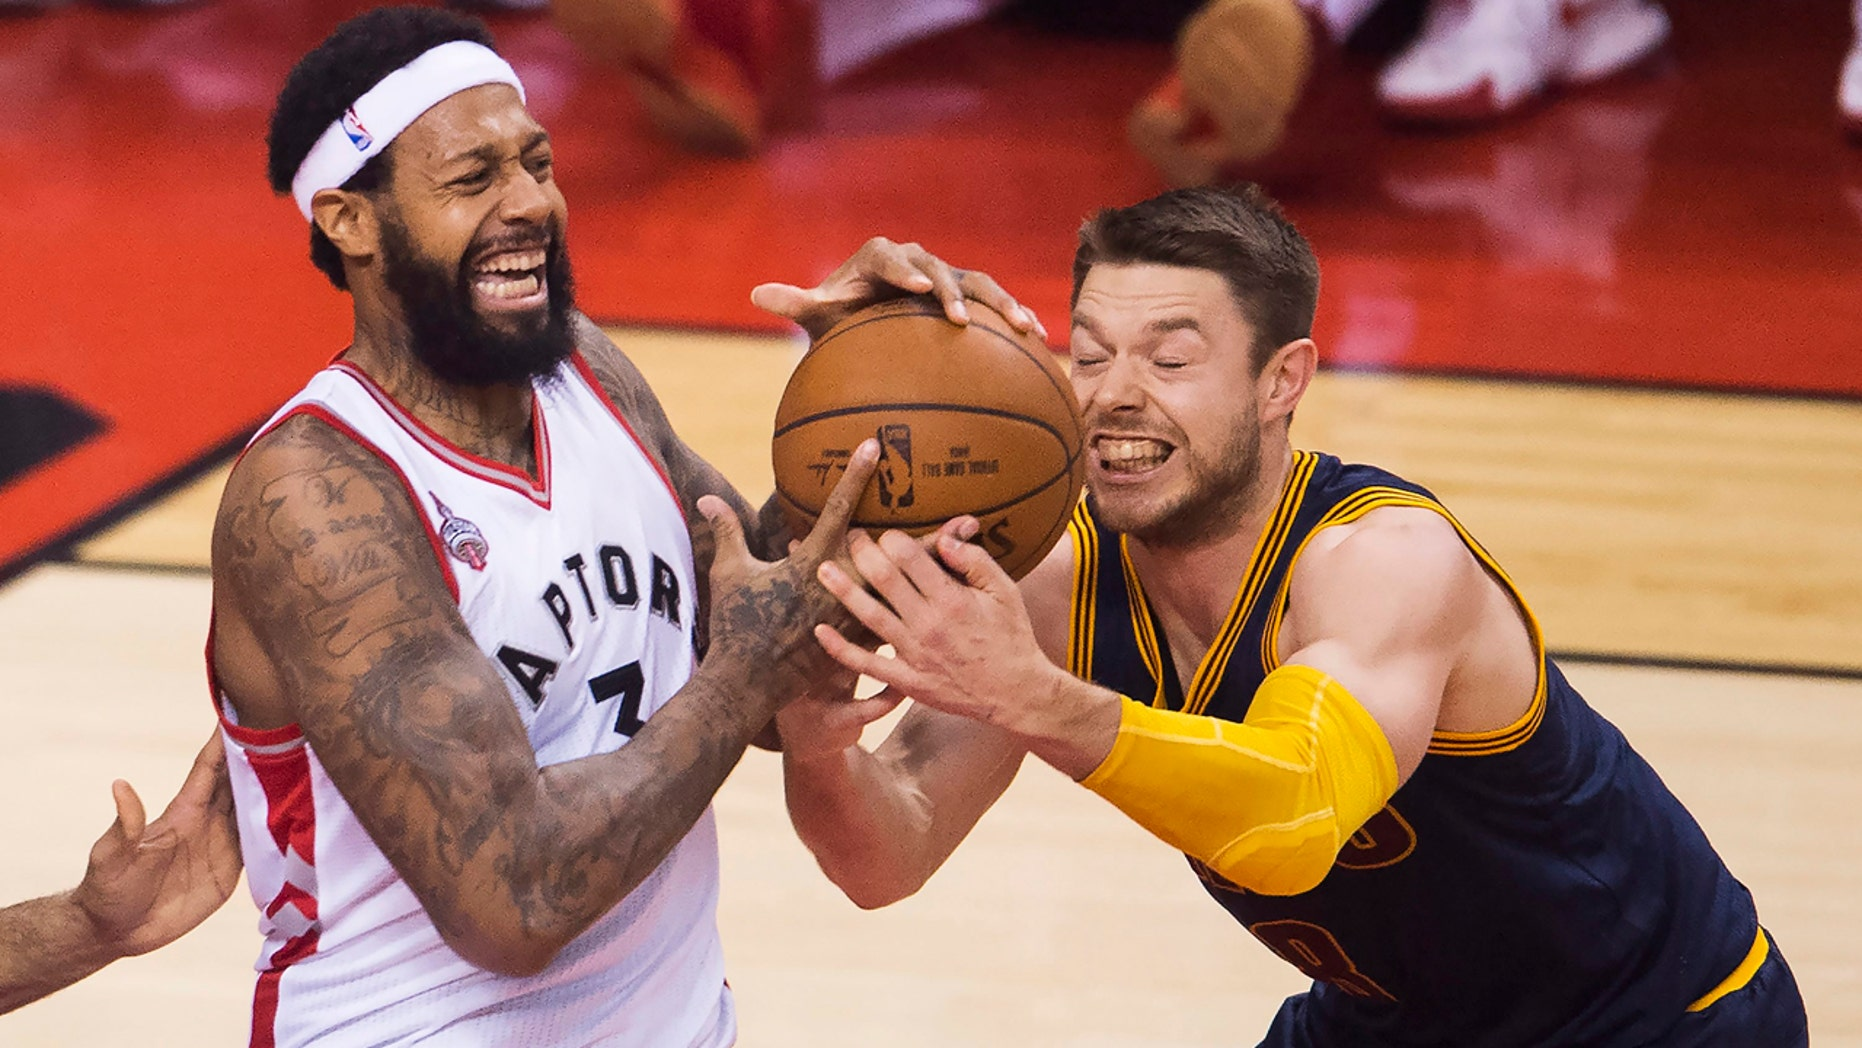 May 23, 2016: Toronto Raptors forward James Johnson (3) battles for the ball against Cleveland Cavaliers guard Matthew Dellavedova (8) during first half Eastern Conference final playoff basketball action in Toronto.